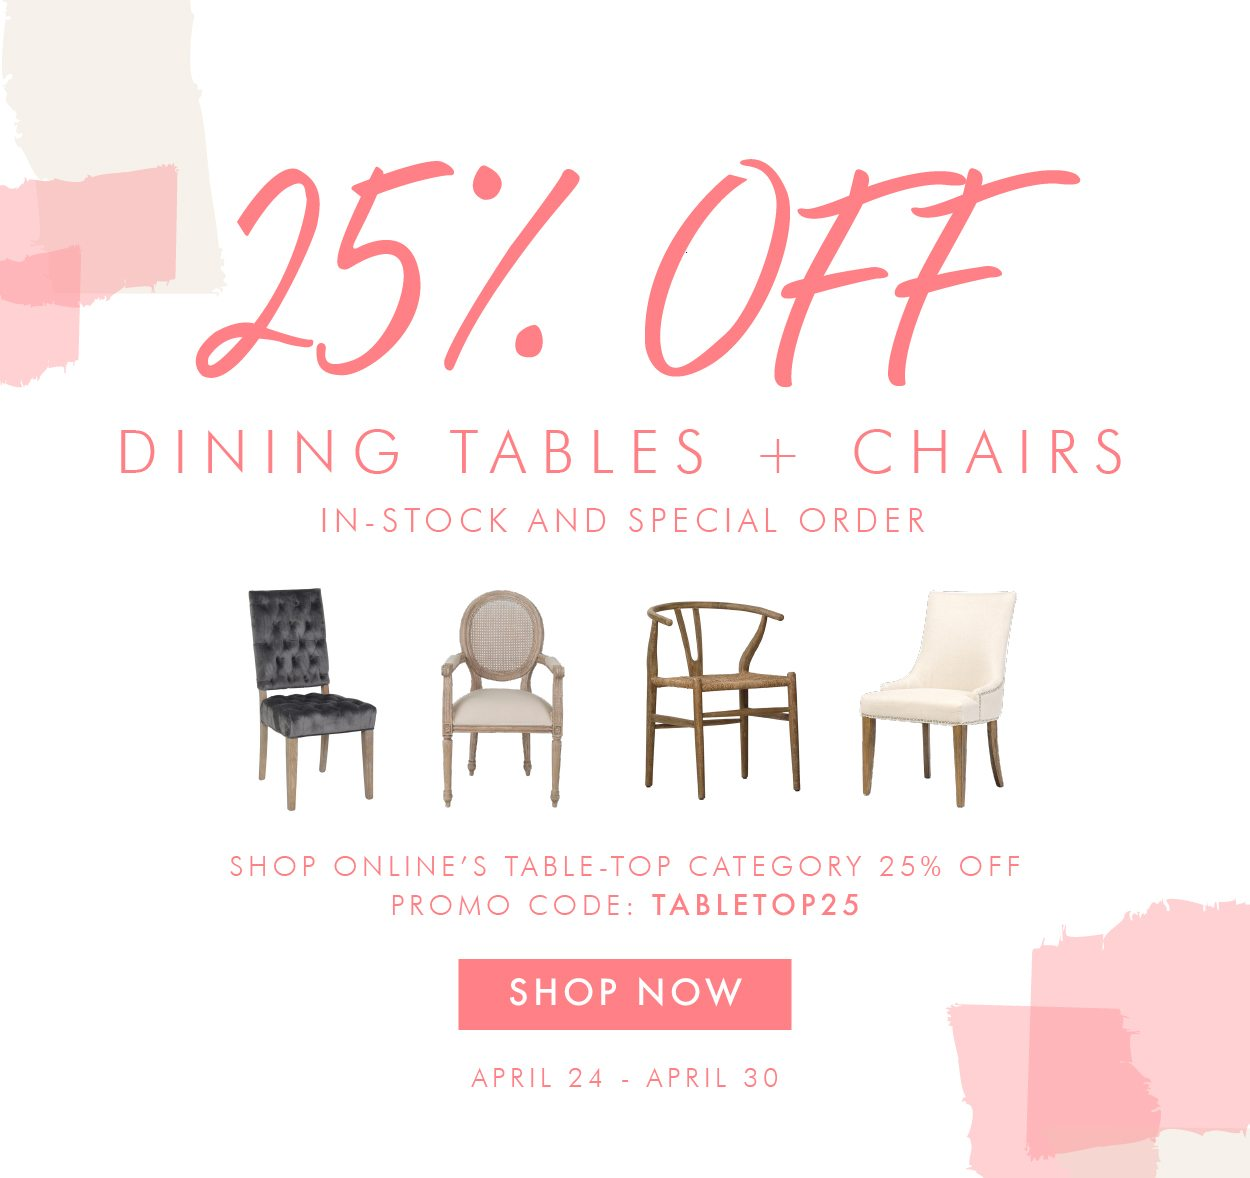 dining-tables-and-chairs-graphic-color